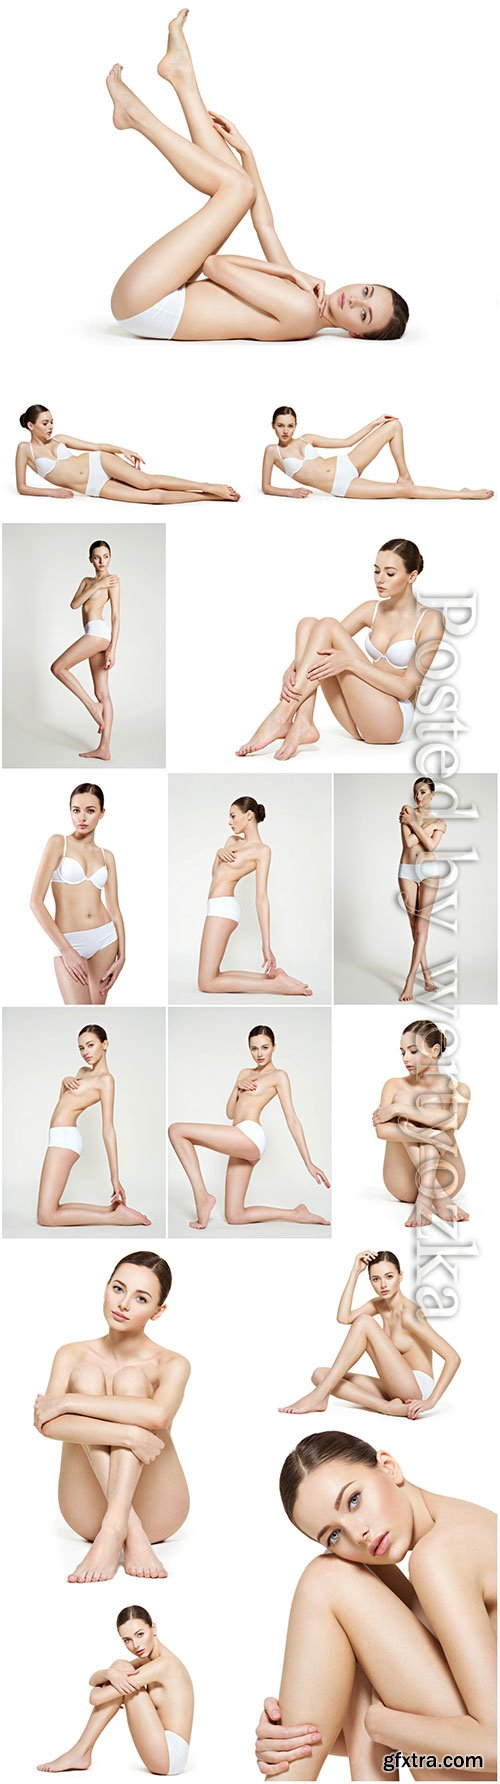 Woman with perfect body and legs beautiful stock photo